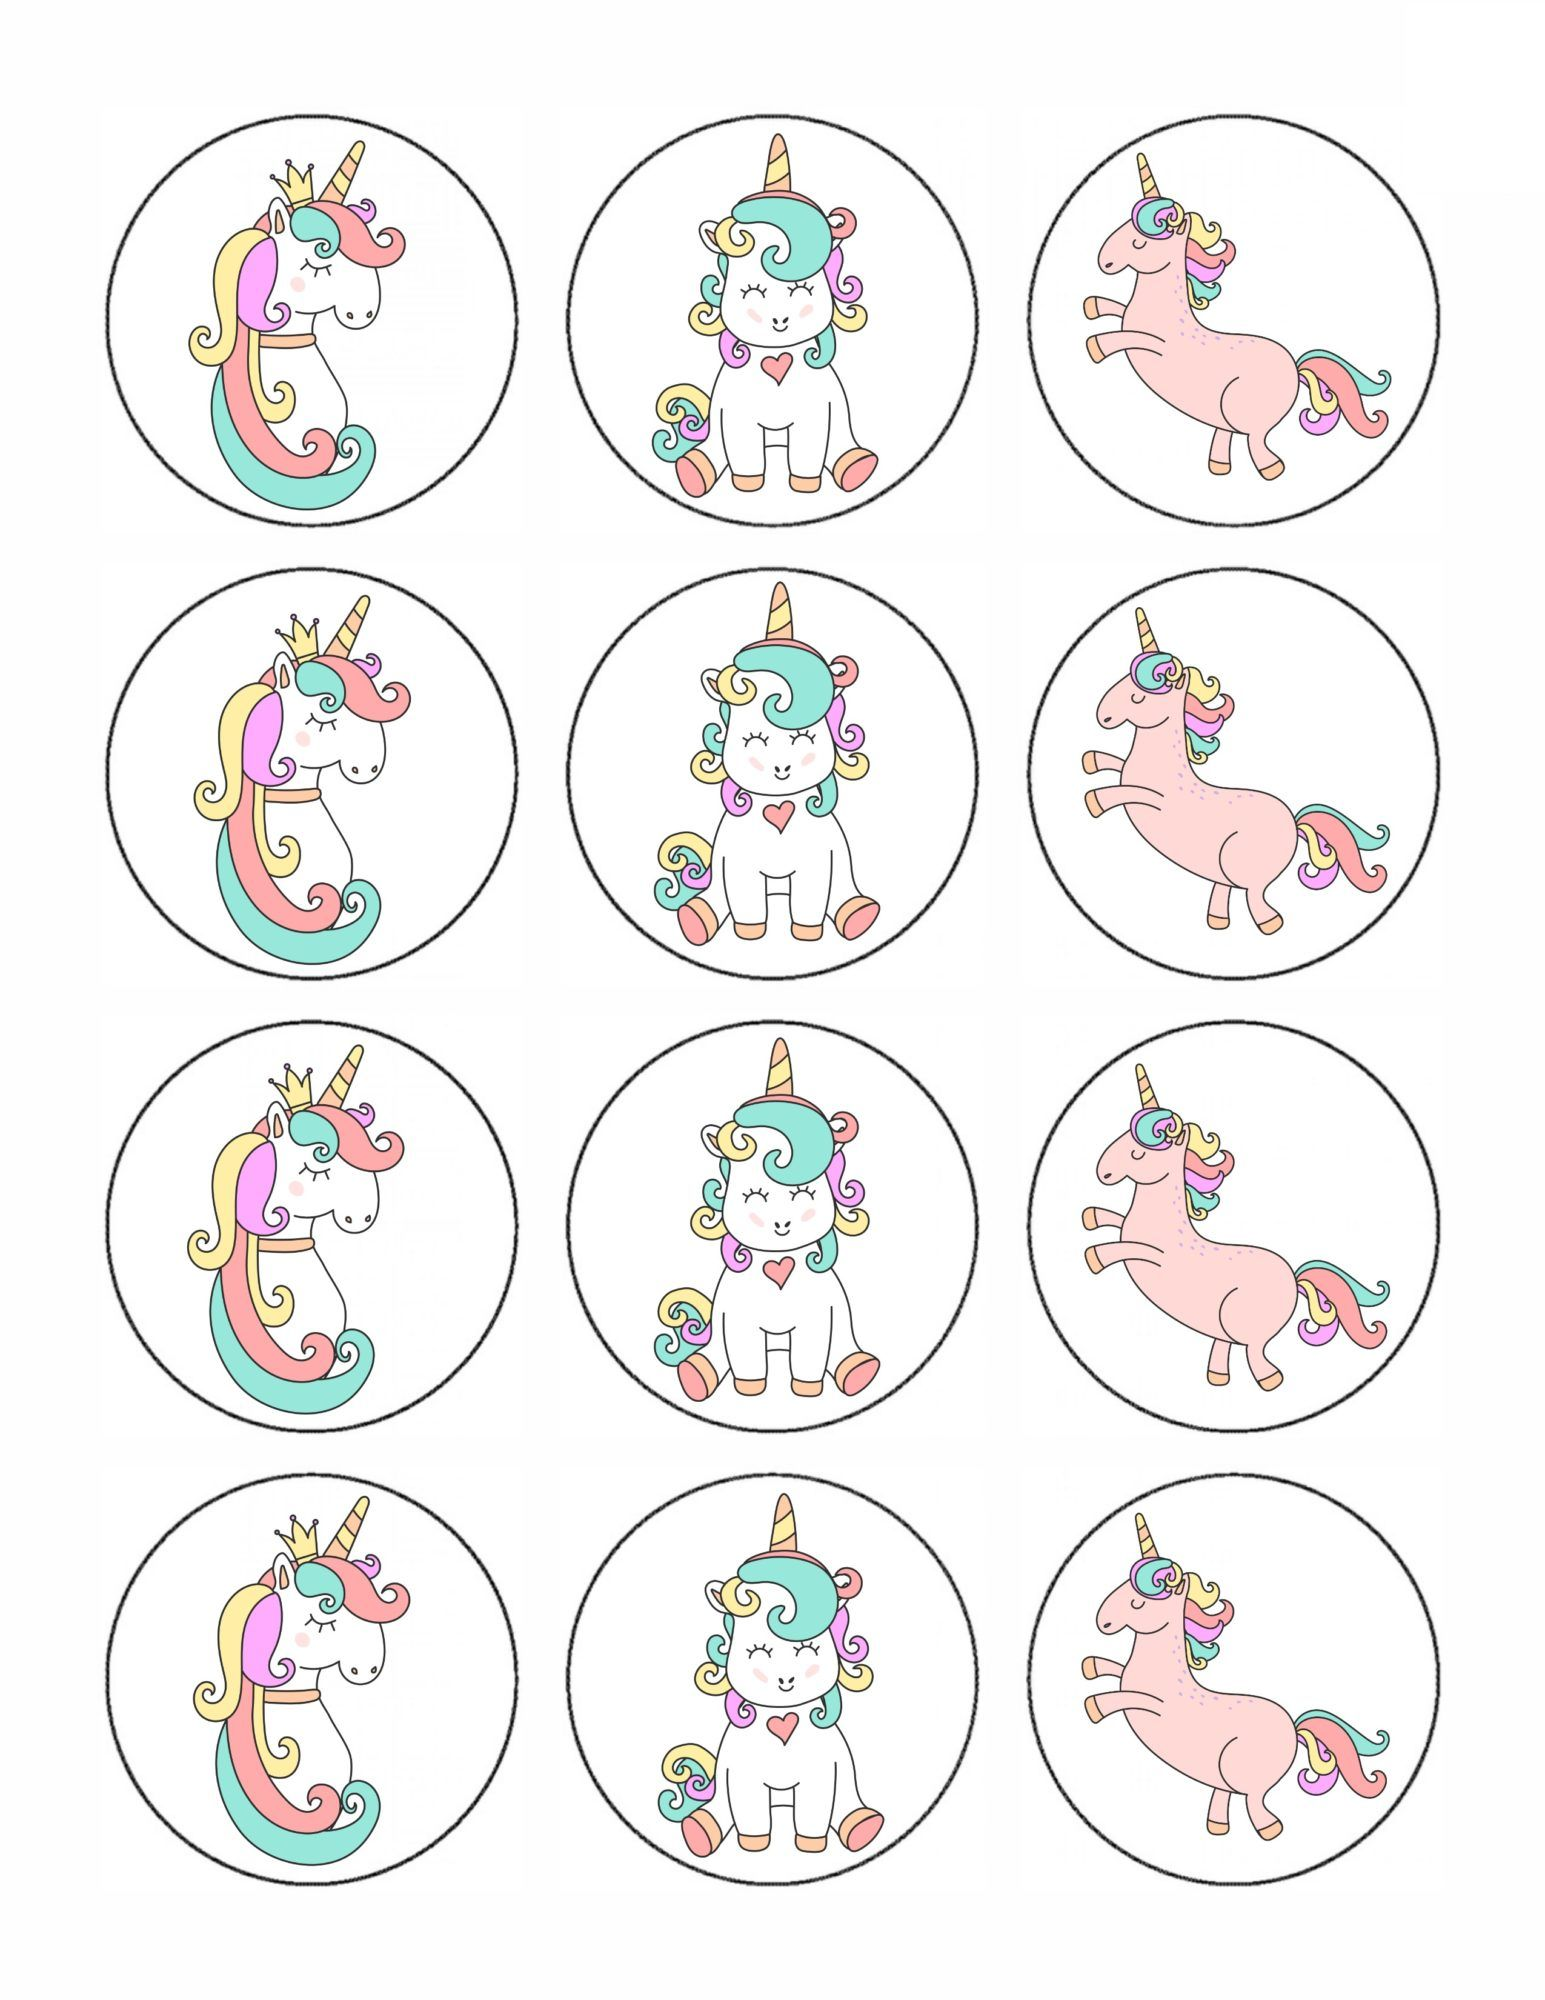 image relating to Unicorn Cupcake Toppers Printable called Cost-free Printable Unicorn Cupcake Toppers Elli Ethan